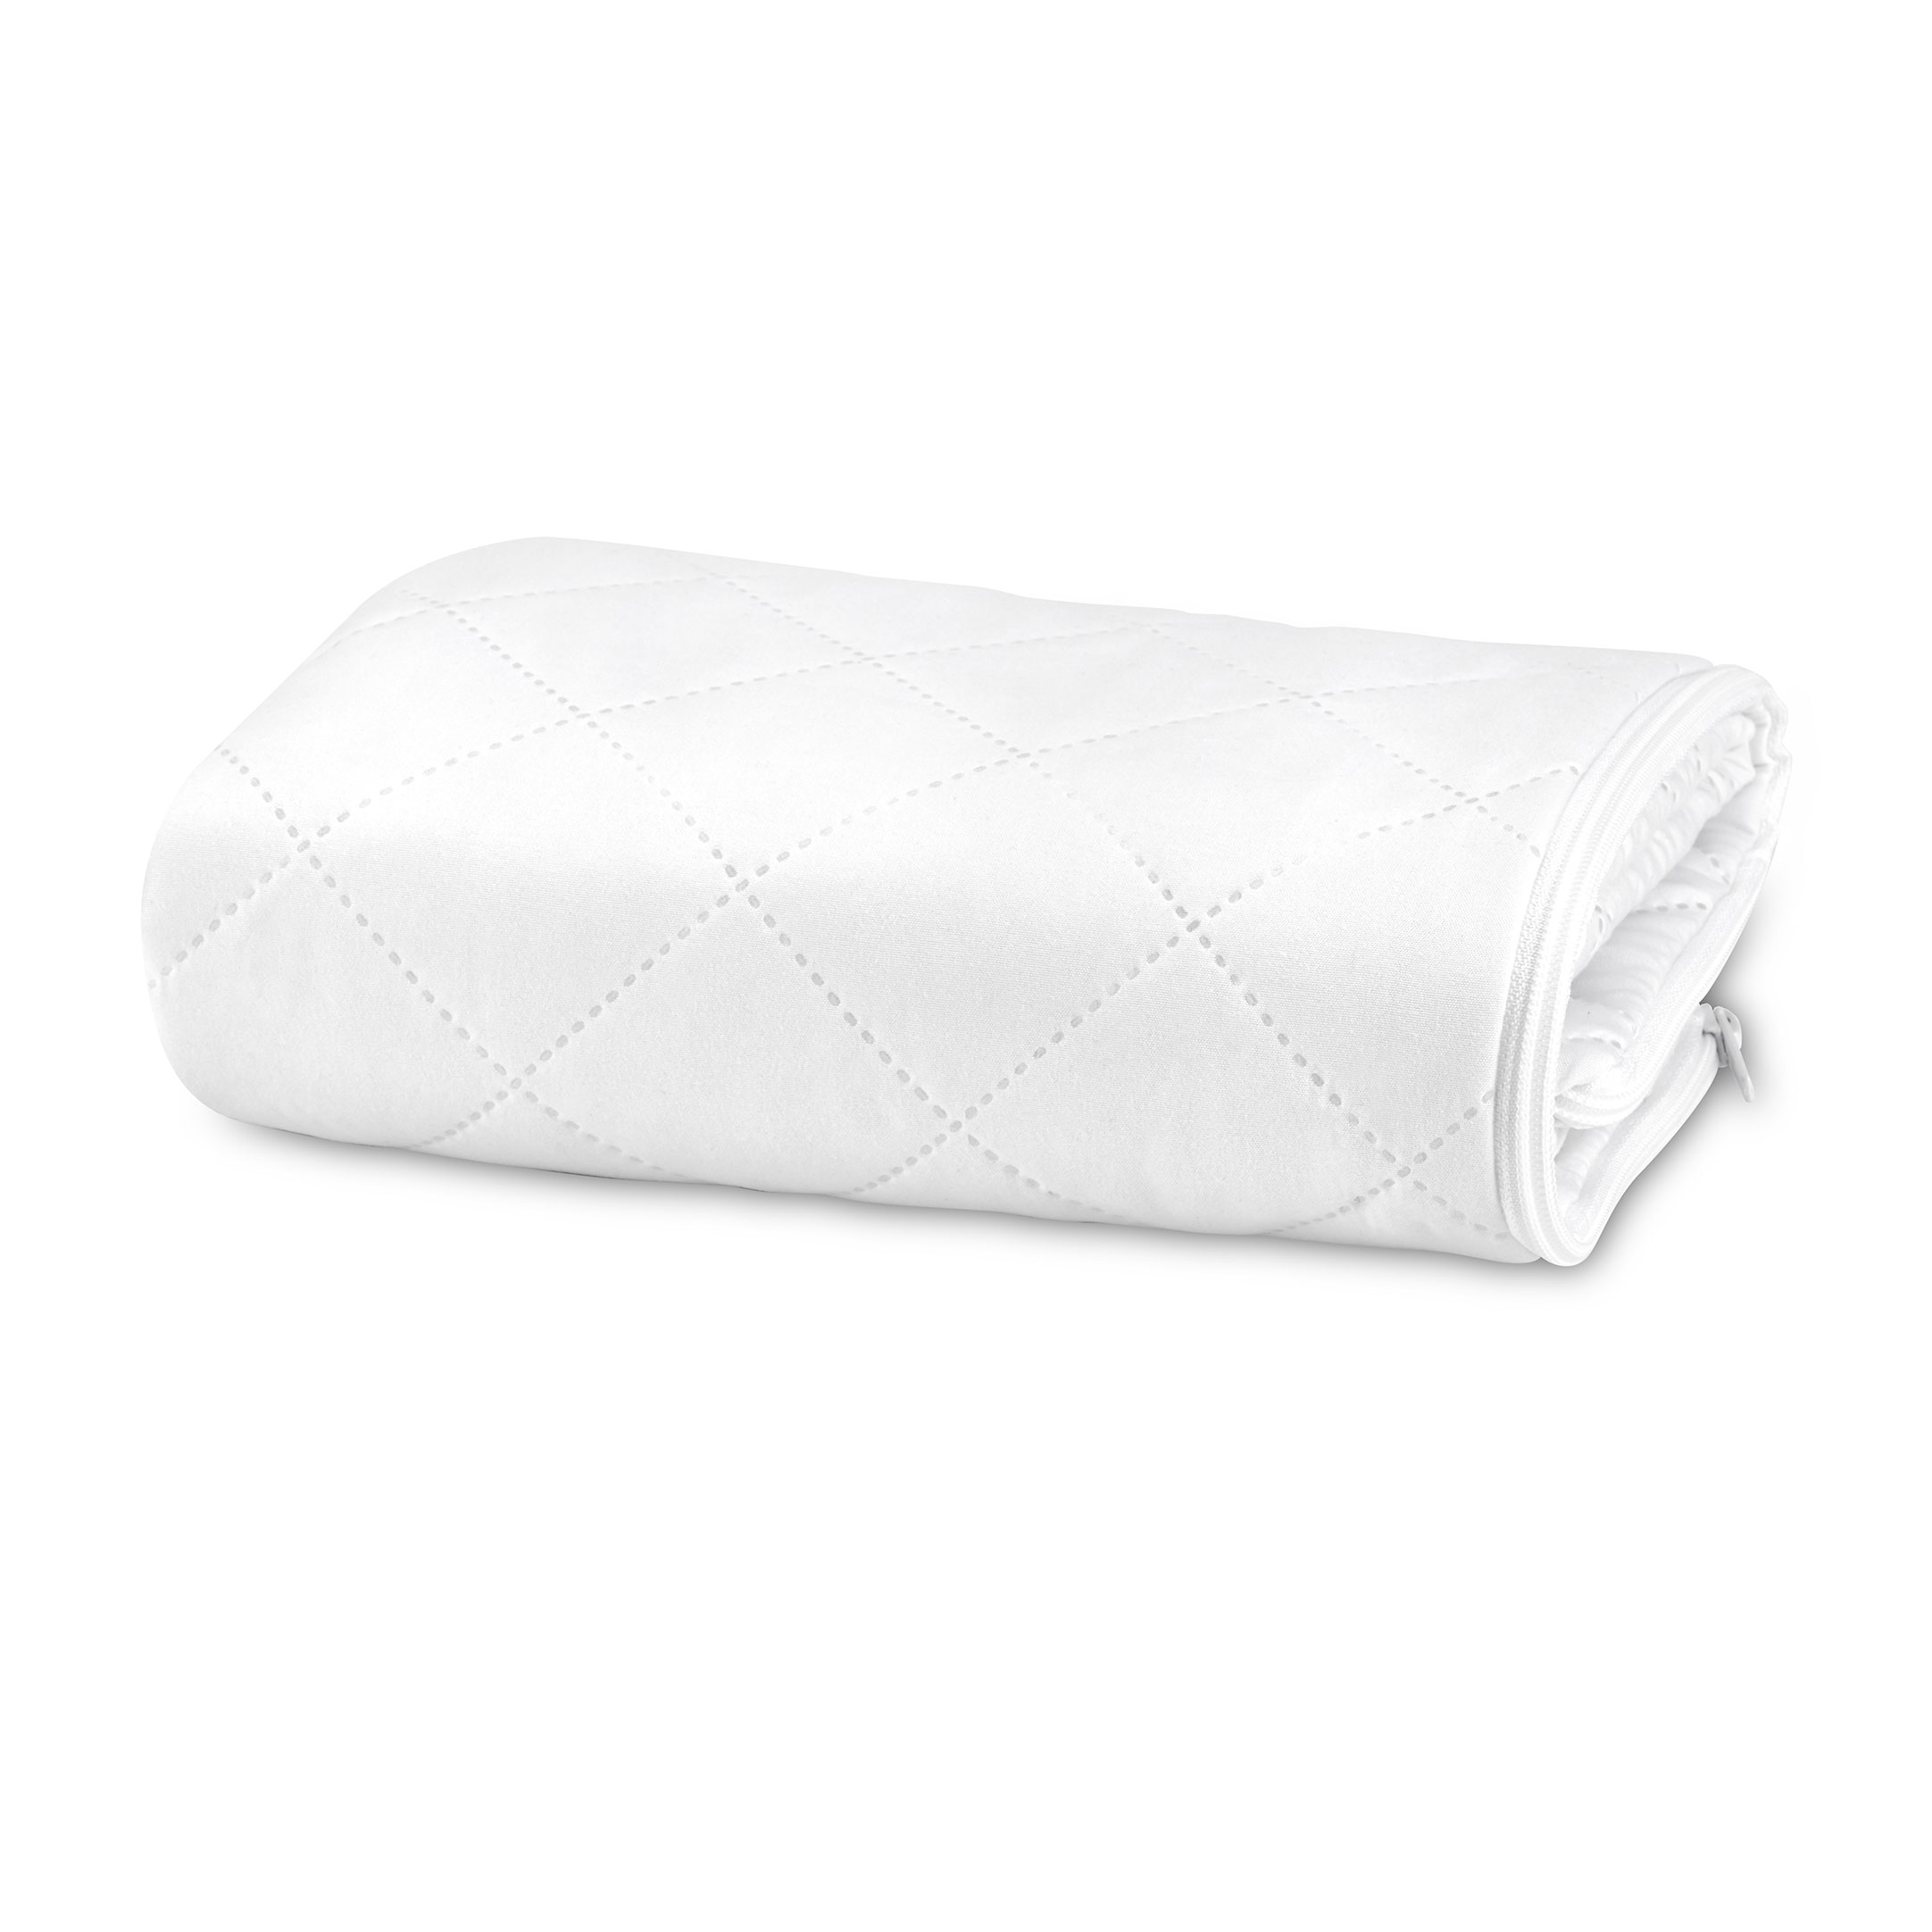 pillow quilted protector protectors bedroom hospitality products